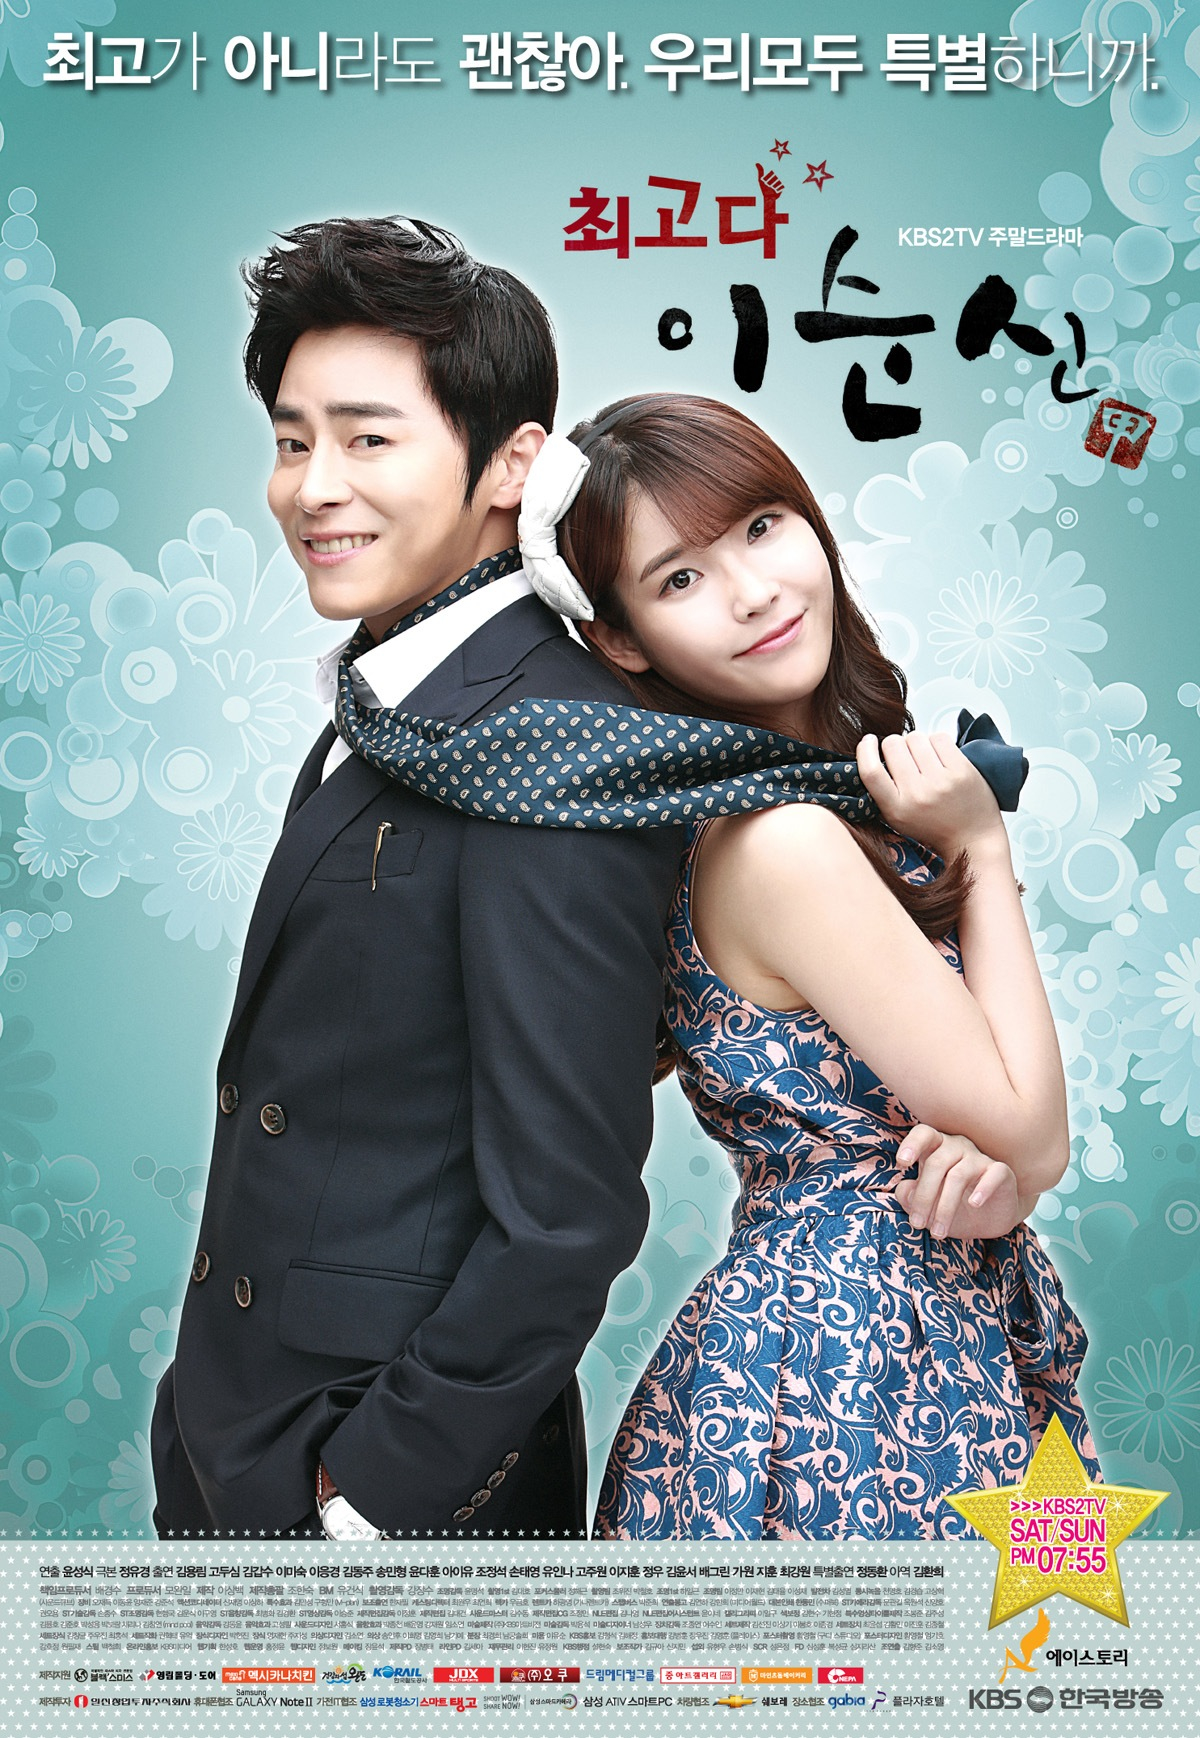 Lee Soon Shin Tốt Nhất - The Best Lee Soon Shin